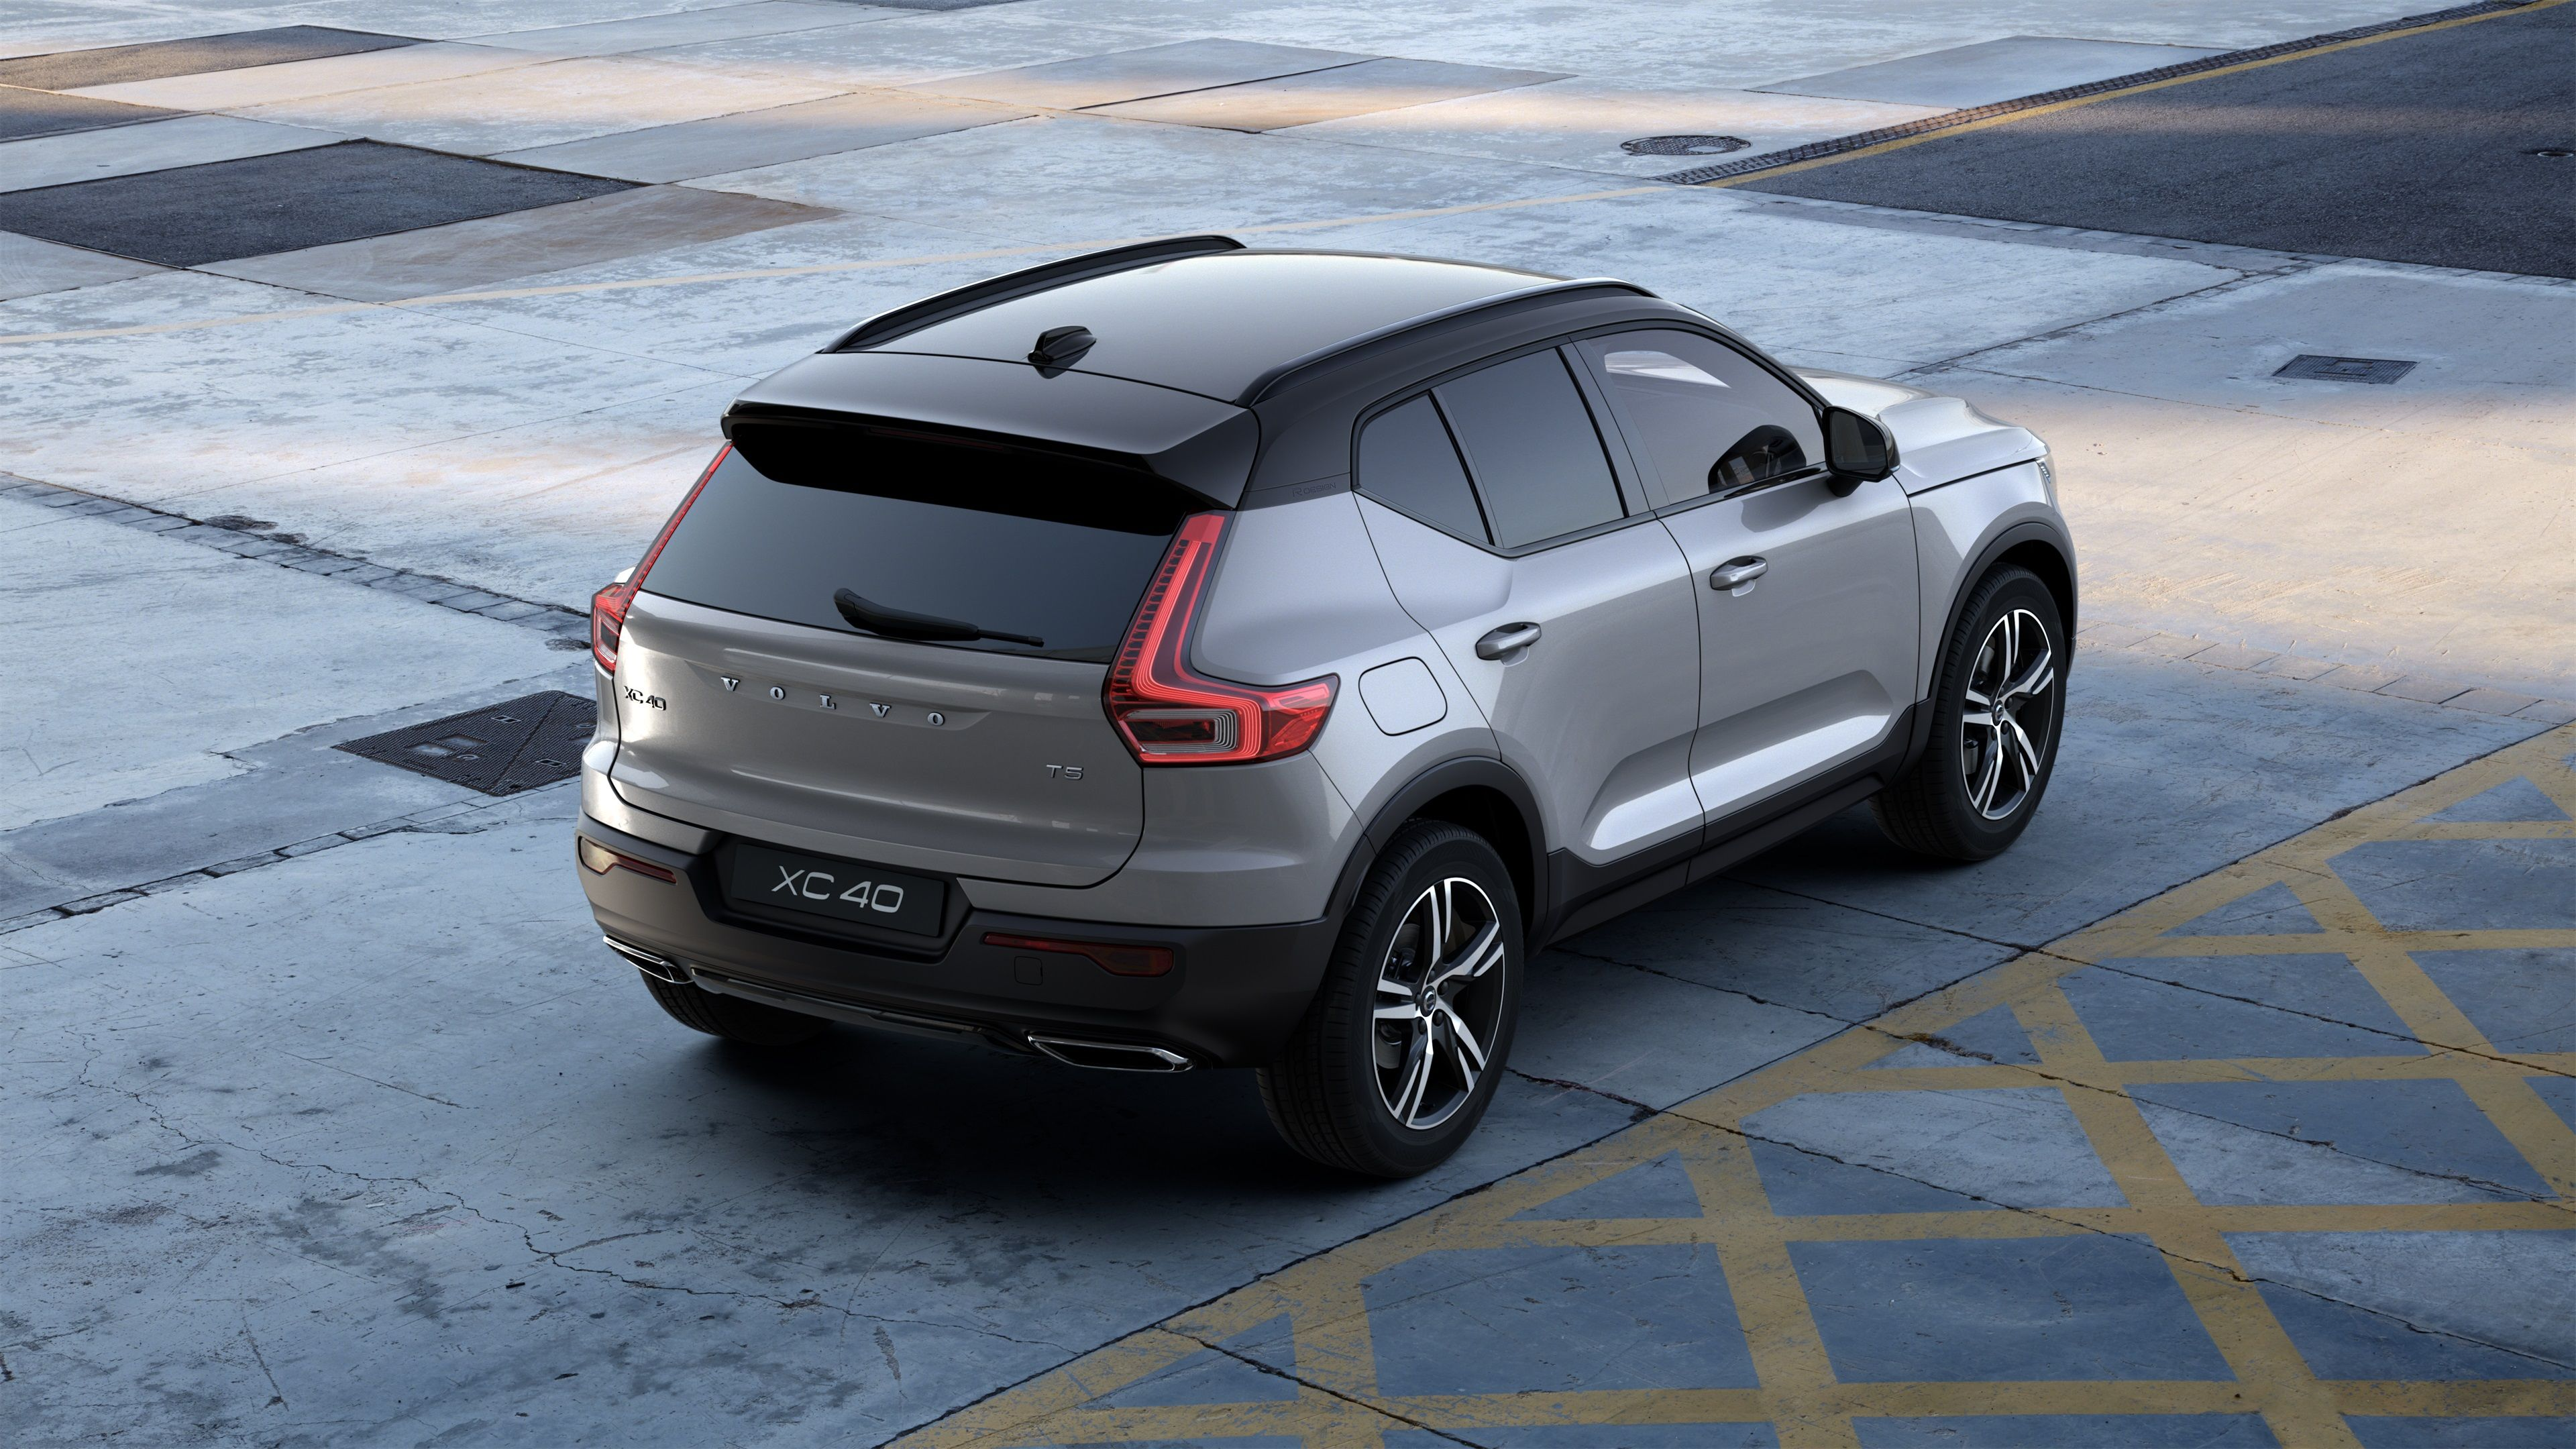 xc40 r design t5 awd vehicles pinterest t5 volvo and vehicle. Black Bedroom Furniture Sets. Home Design Ideas